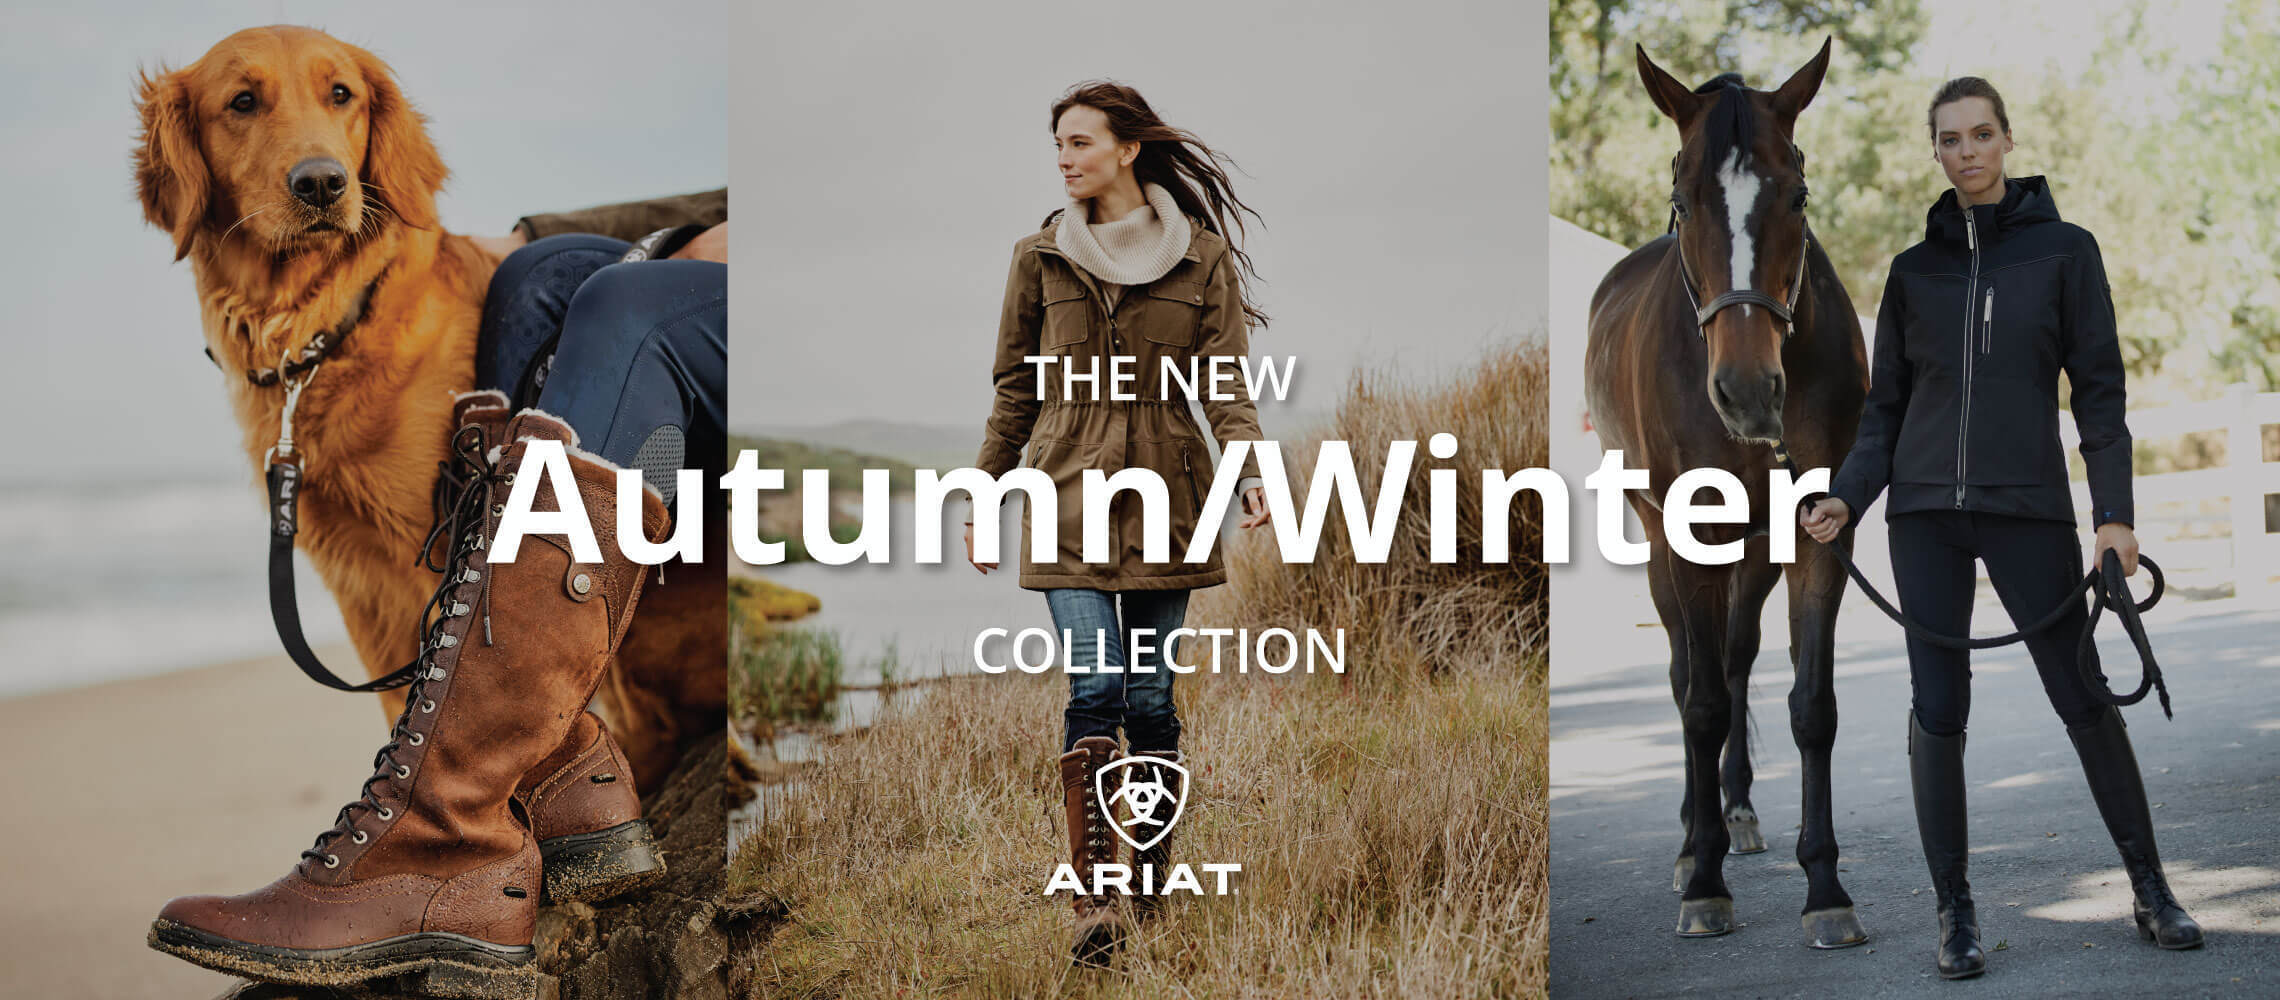 Ariat - The New Autumn/Winter Collection